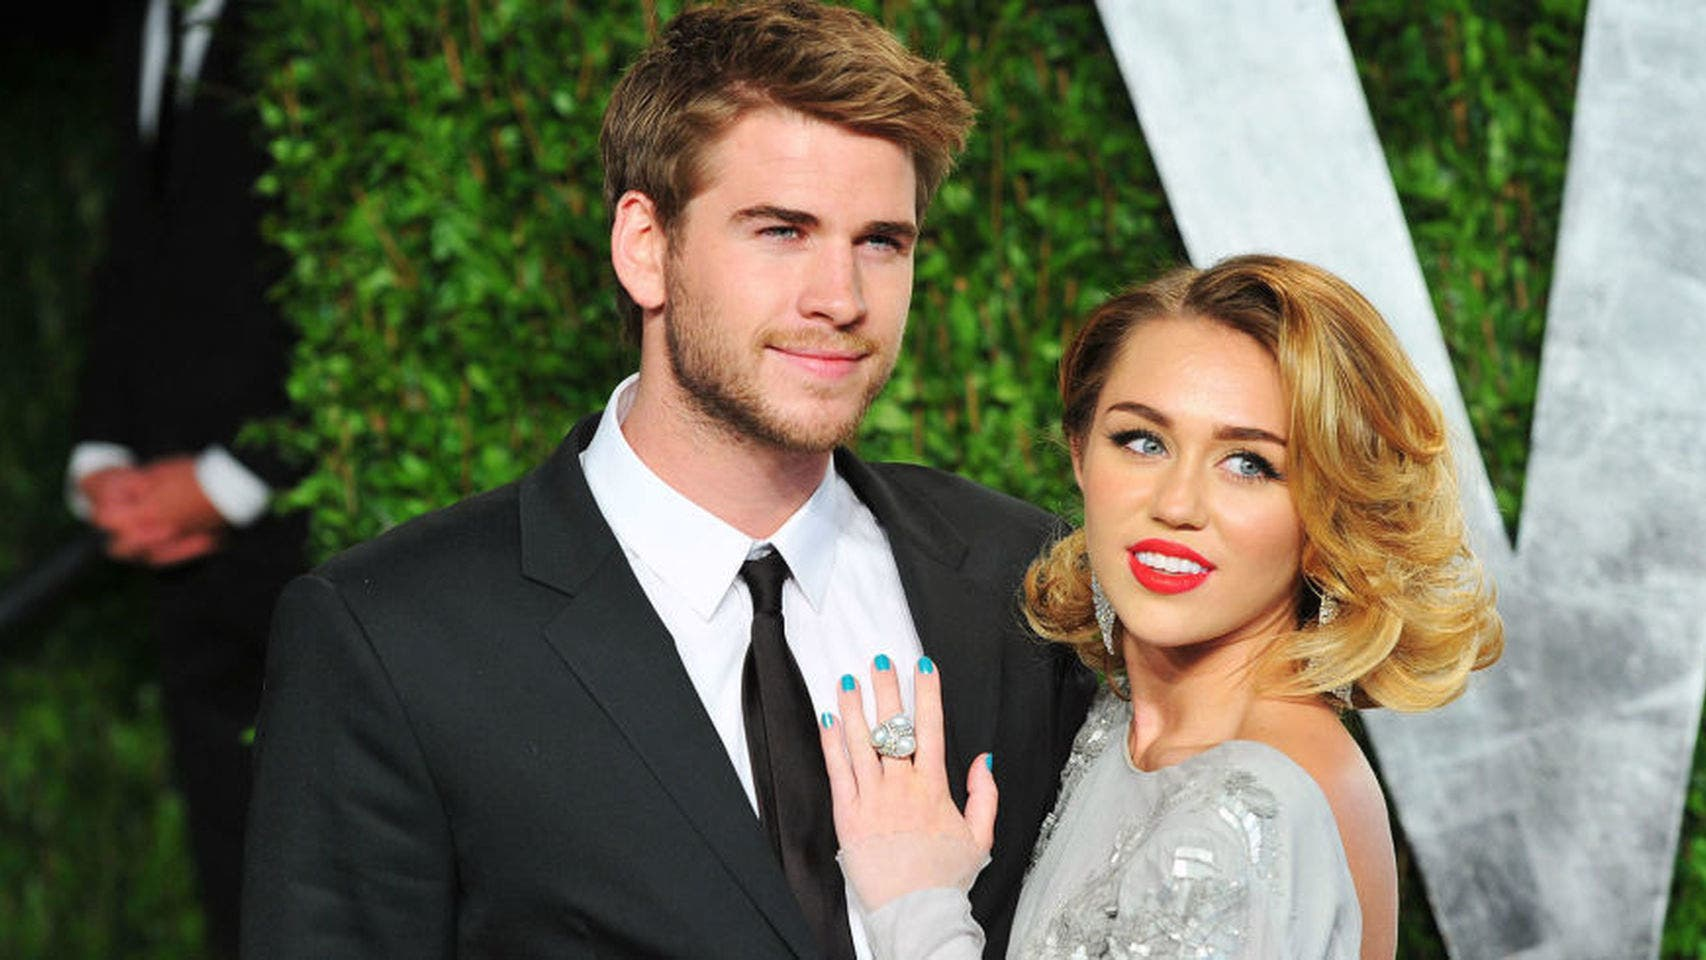 cancelan boda Miley Cyrus y Liam Hemsworth